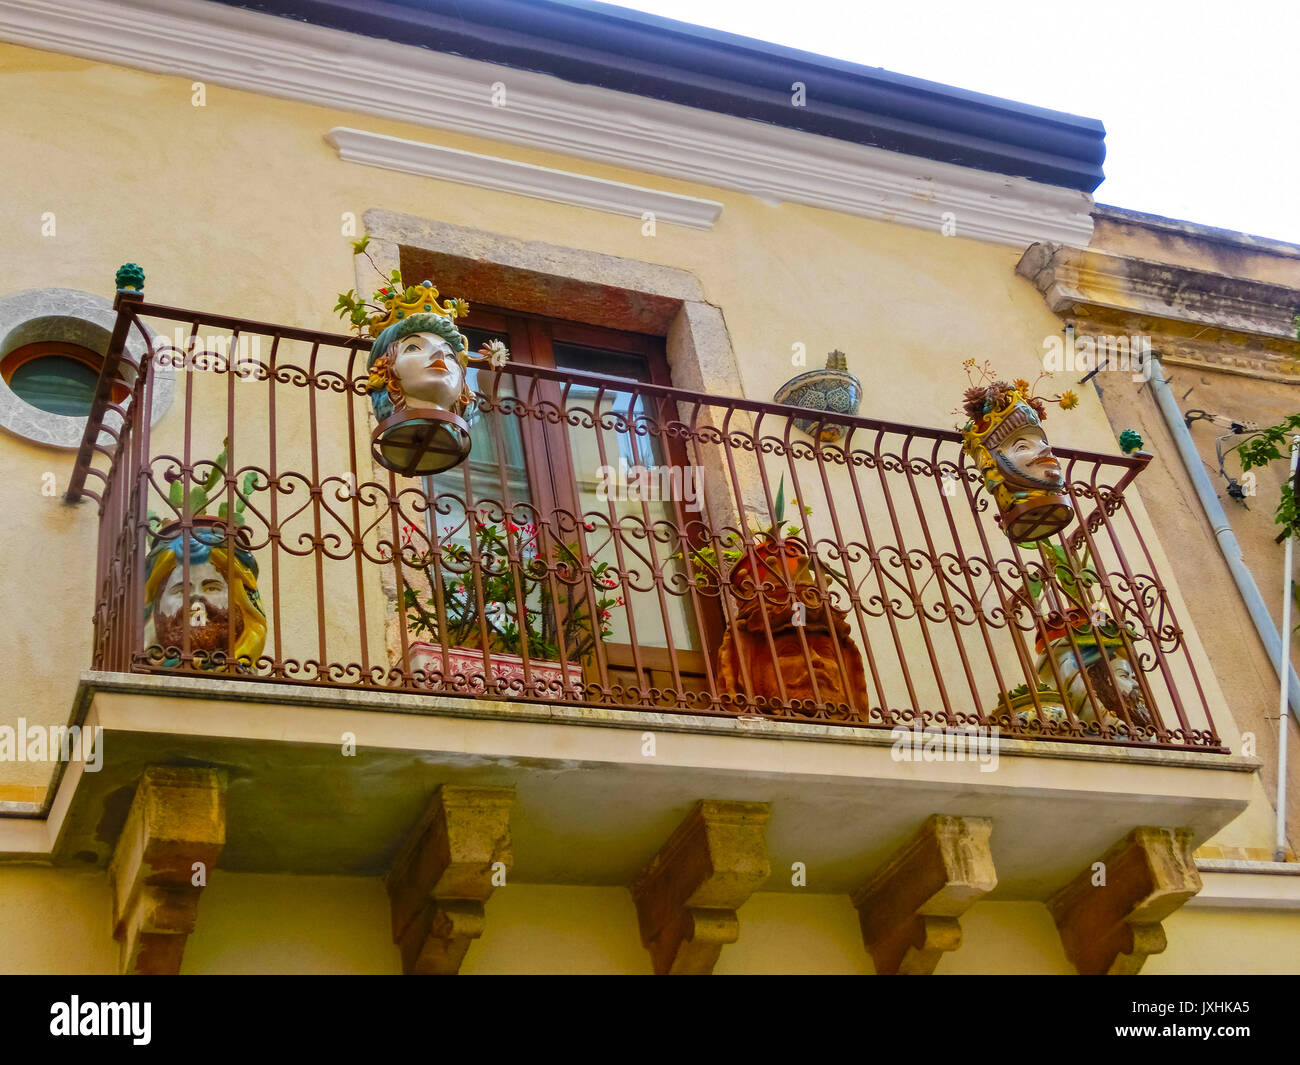 Italy balcony garden stock photos italy balcony garden for Balcony in italian